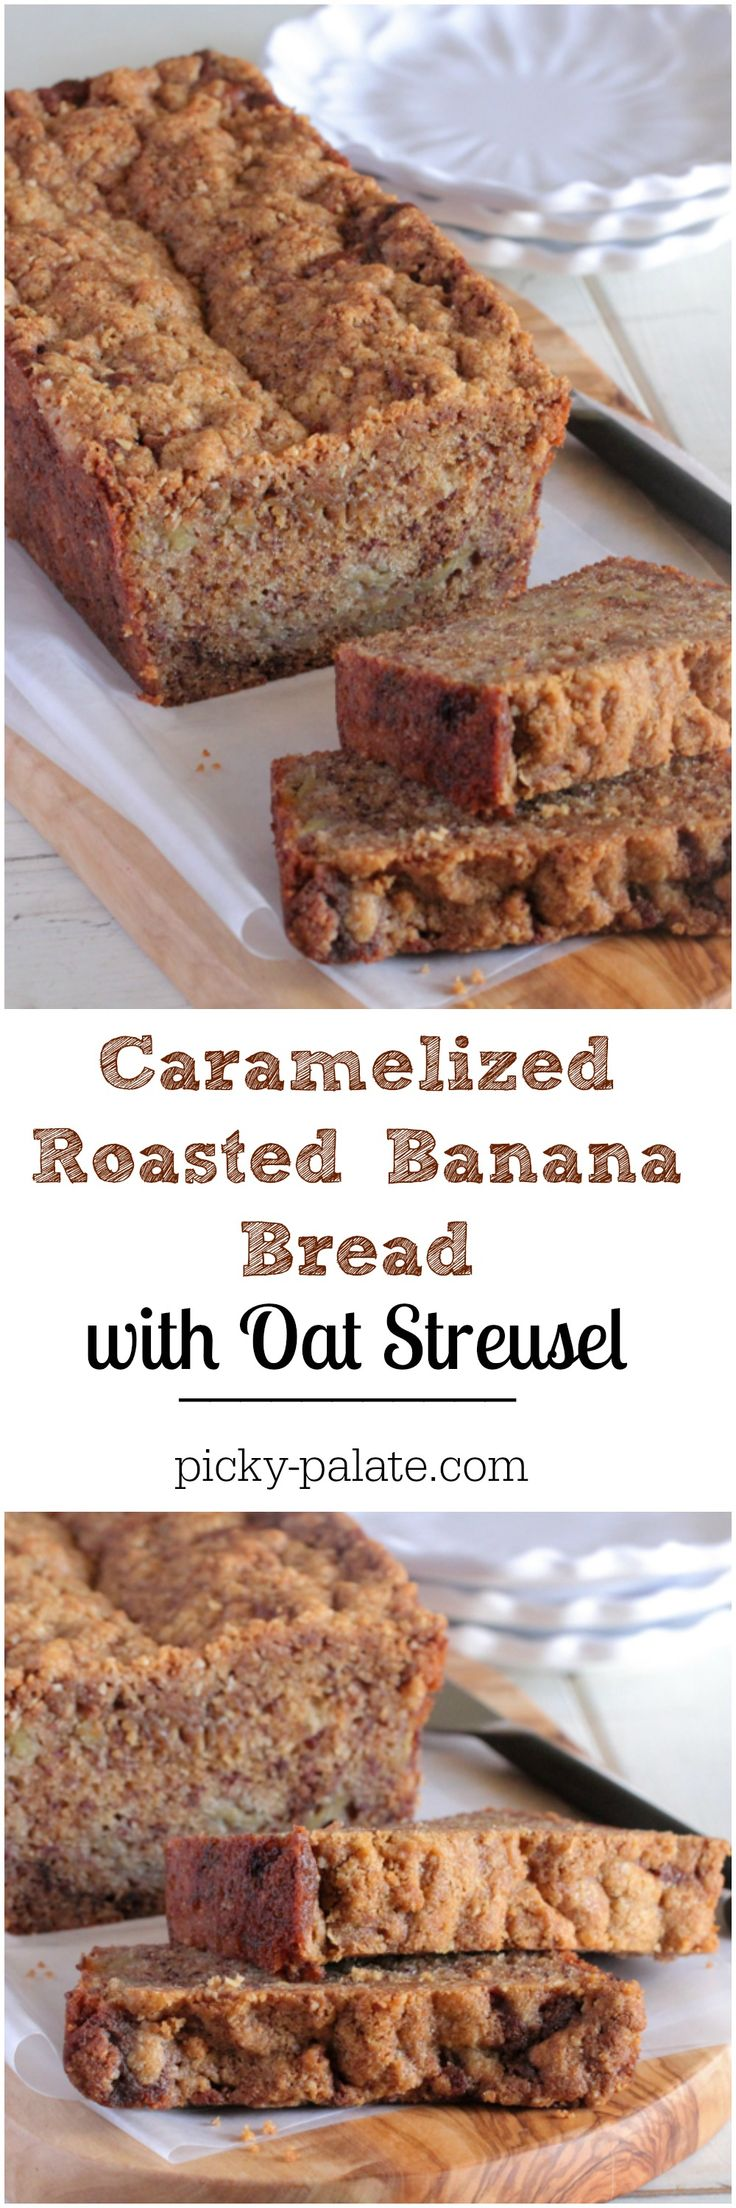 Caramelized Roasted Banana Bread with Oat Streusel! Beautiful and delicious banana bread! #QuakerUp #bananabread #baking #recipe